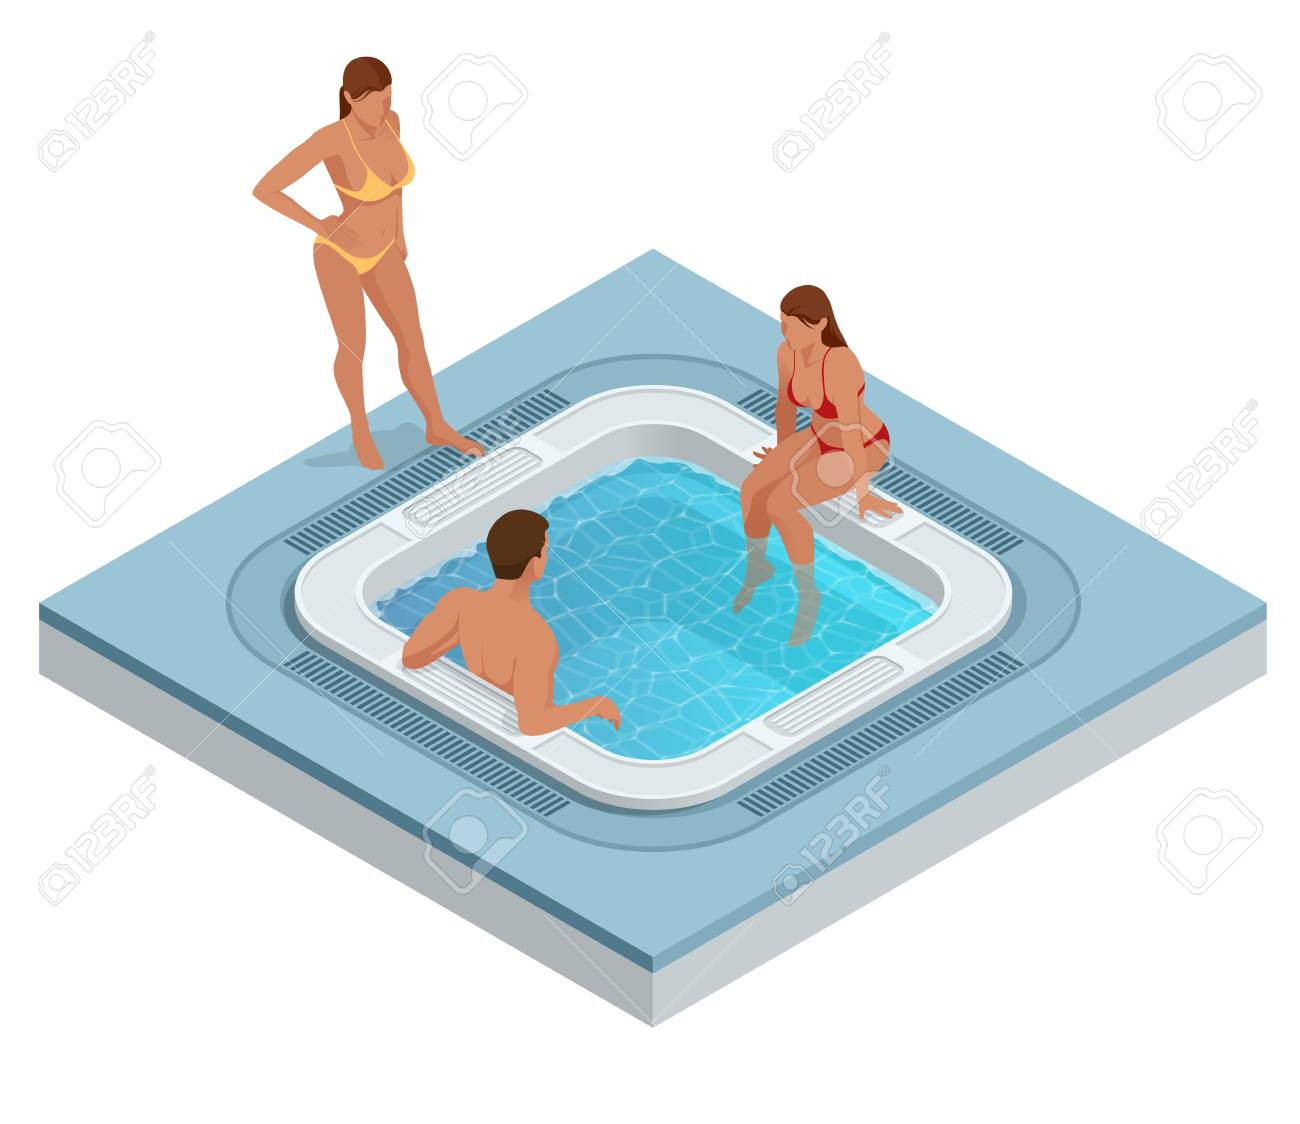 Isometric Jacuzzi With Swirling Water Isolated On White. People ...